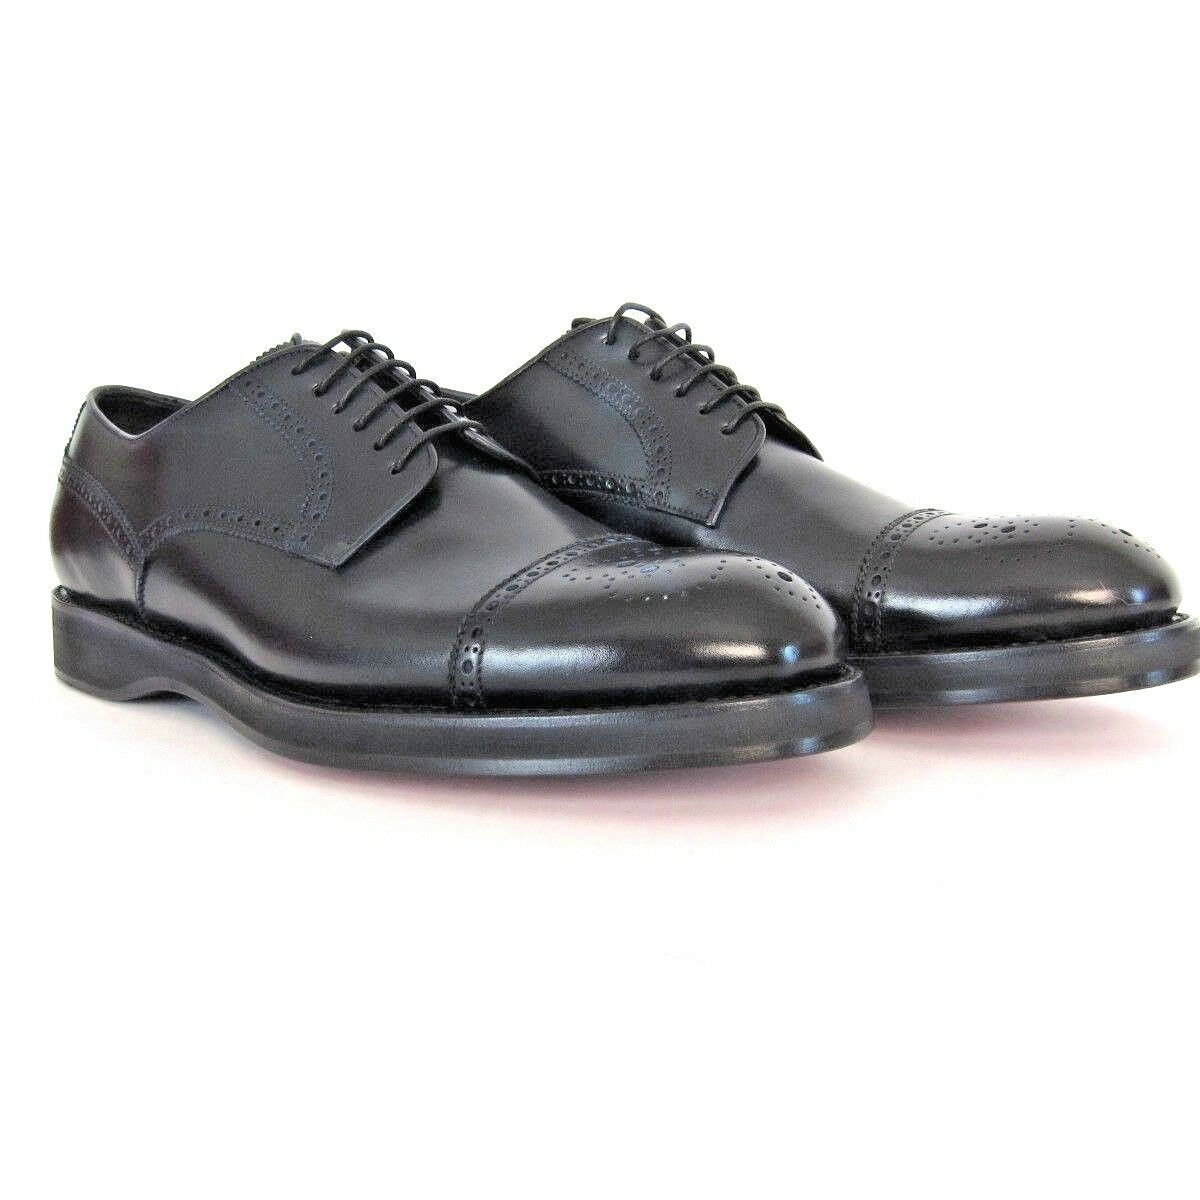 P-9180 New Brioni Oxford Black Leather shoes Size US 9 Marked 10